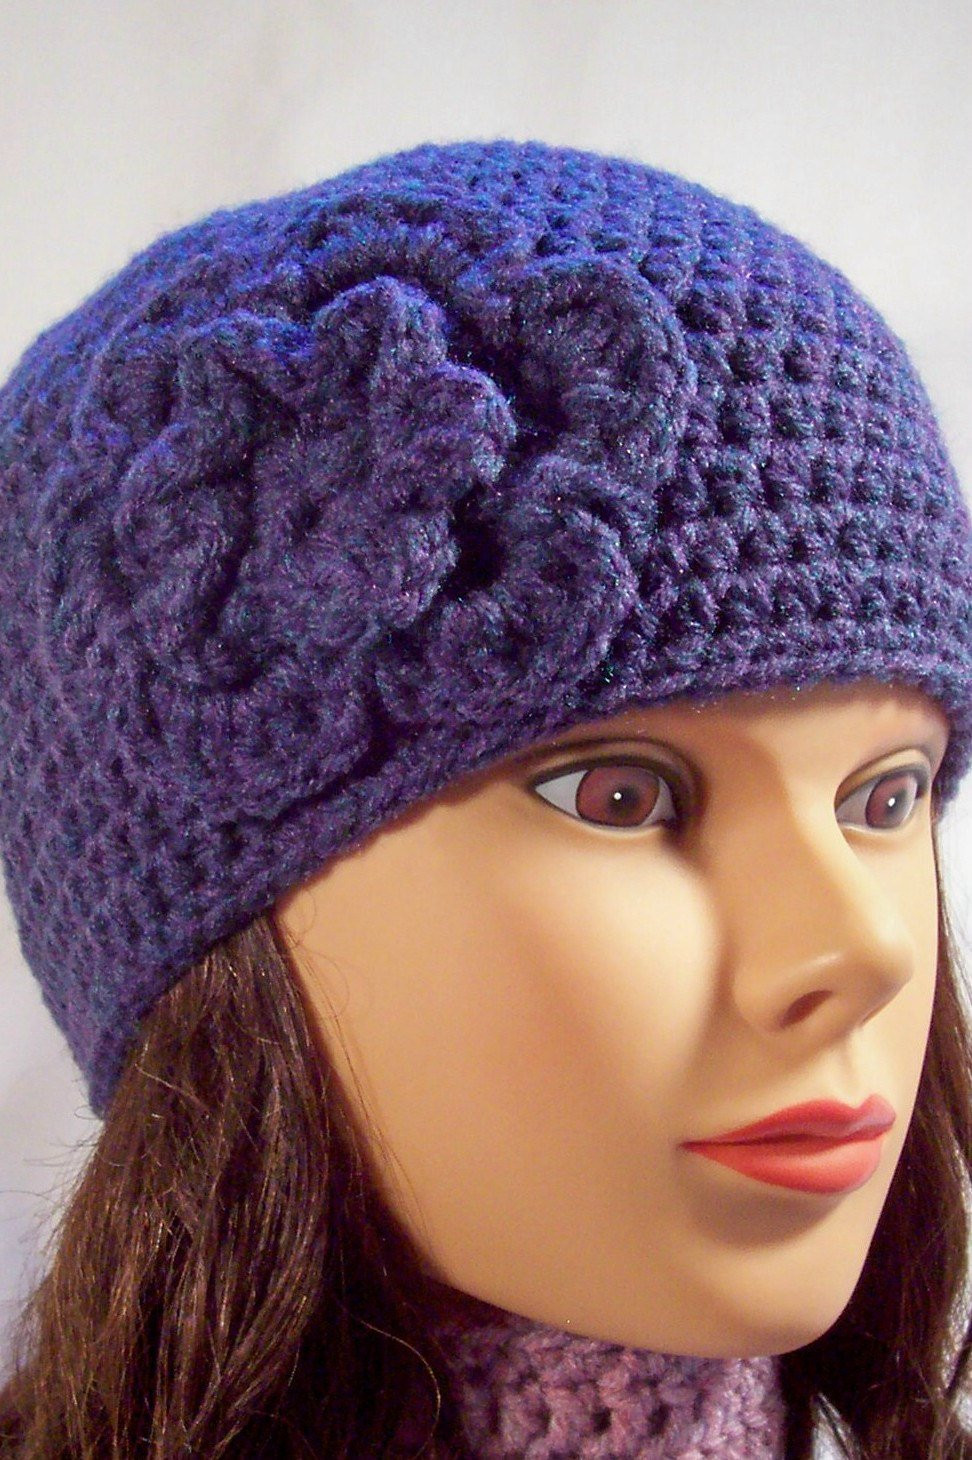 Crochet Girl Hat Elegant Womens Crochet Hat Girls Crochet Hat with Flower Dark Purple Of Superb 47 Pics Crochet Girl Hat